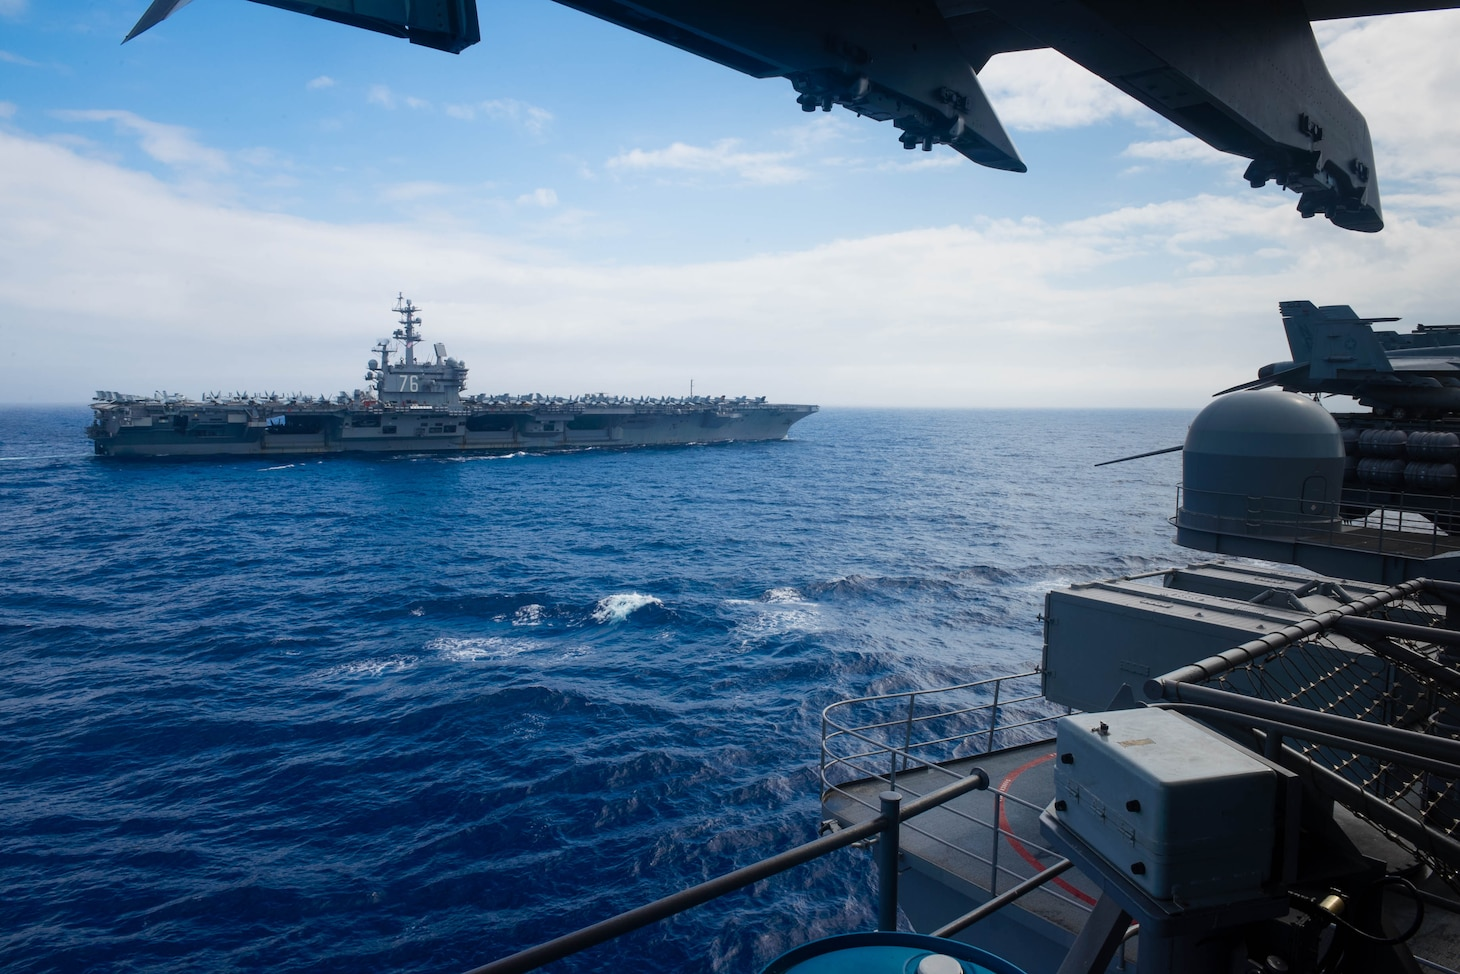 PHILIPPINE SEA (June 18, 2016) - The Nimitz-class aircraft carriers USS John C. Stennis (CVN 74) and USS Ronald Reagan (CVN 76) conduct dual carrier strike group operations in the U.S. 7th Fleet area of operations in support of security and stability in the Indo-Asia-Pacific. The operations mark the U.S. Navy's continued presence throughout the area of responsibility. (U.S. Navy photo by Mass Communication Specialist 3rd Class Kenneth Rodriguez Santiago / Released)